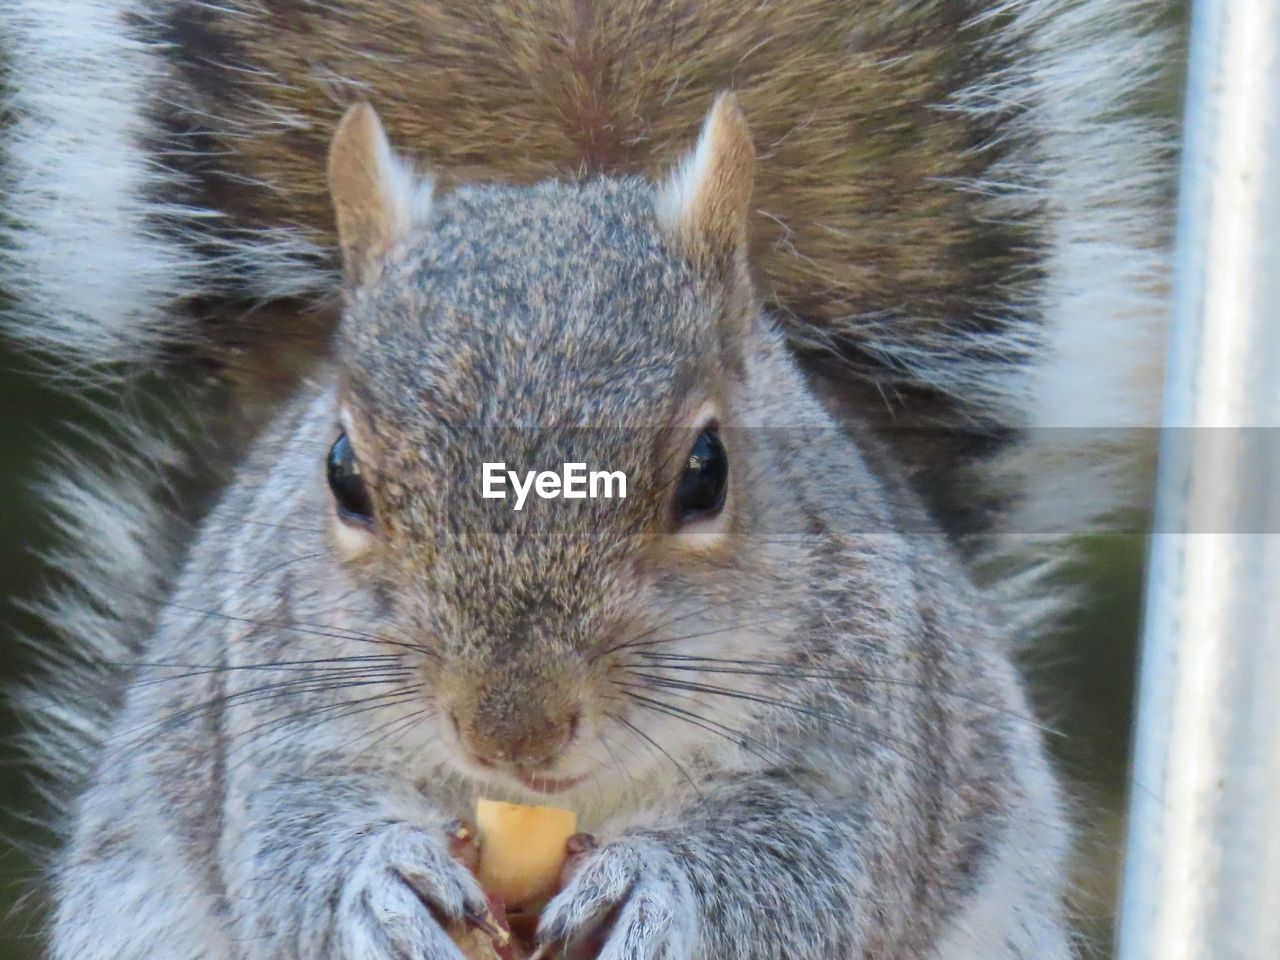 animal themes, animal wildlife, animal, one animal, rodent, mammal, animals in the wild, close-up, vertebrate, squirrel, portrait, no people, looking at camera, eating, day, food, focus on foreground, animal body part, whisker, food and drink, animal head, herbivorous